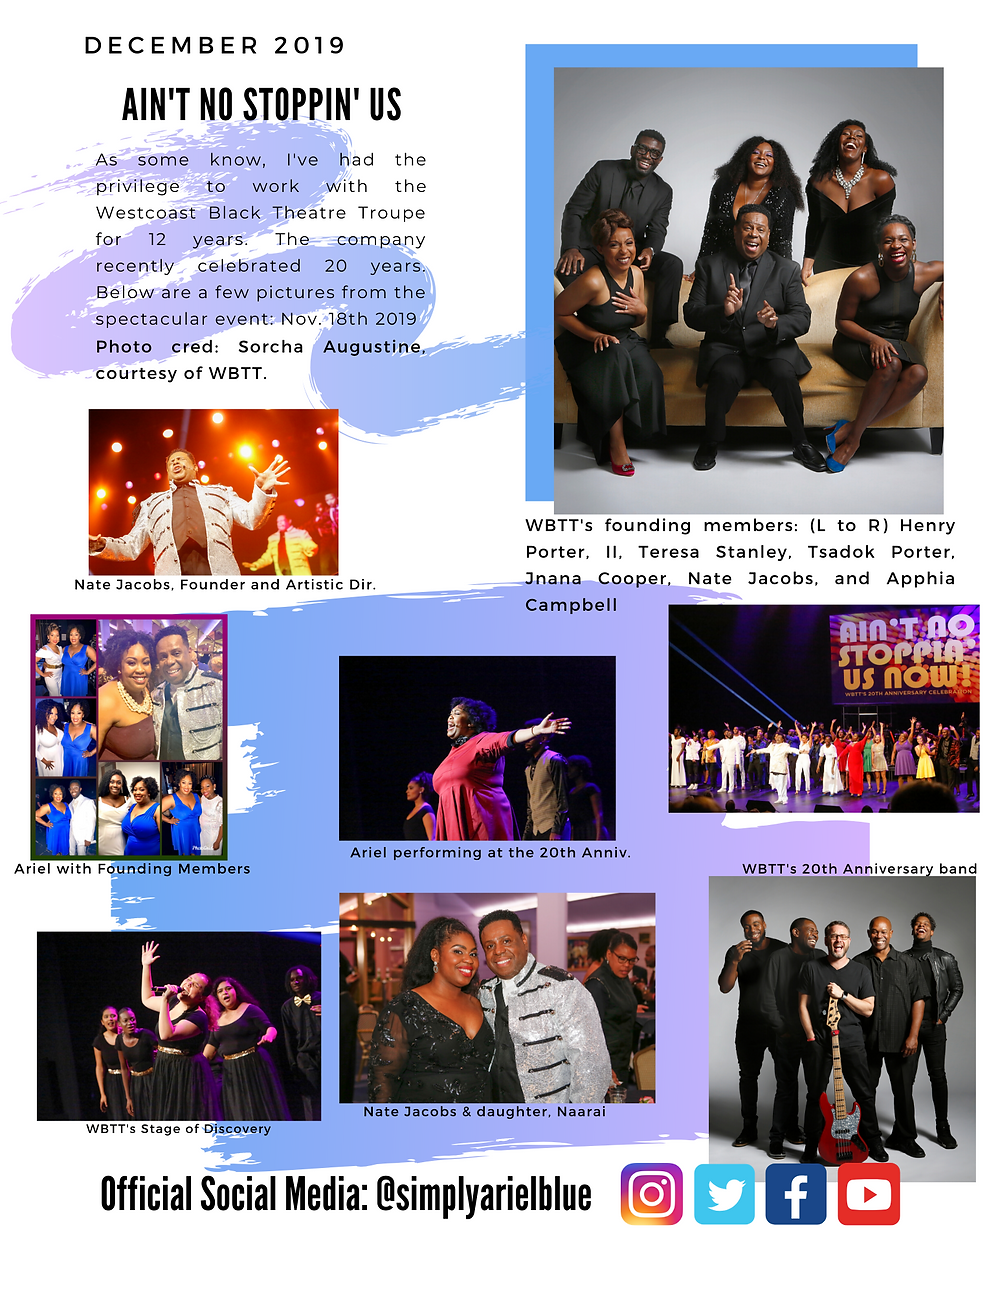 The Blue Print | December 2019 | Page 3 | Ain't No Stoppin' Us, WBTT Anniversary